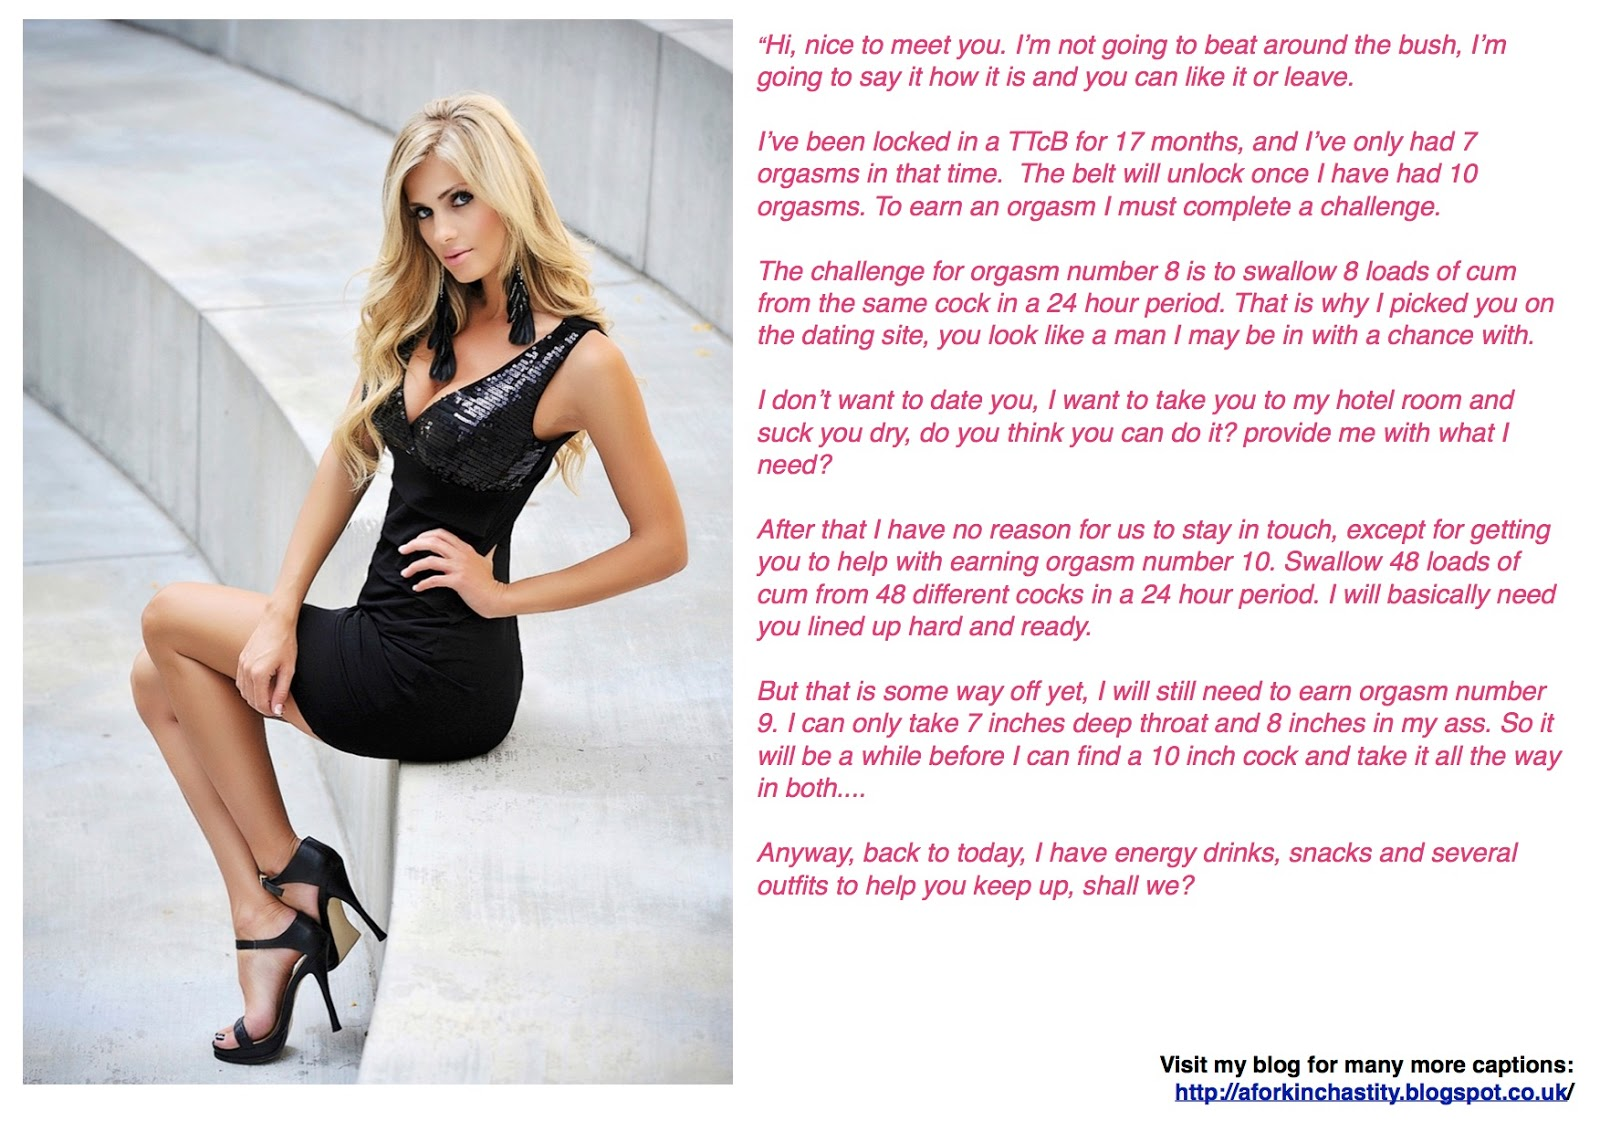 A Fork in the Road: Tales of T&D: Captions 551-553: Female